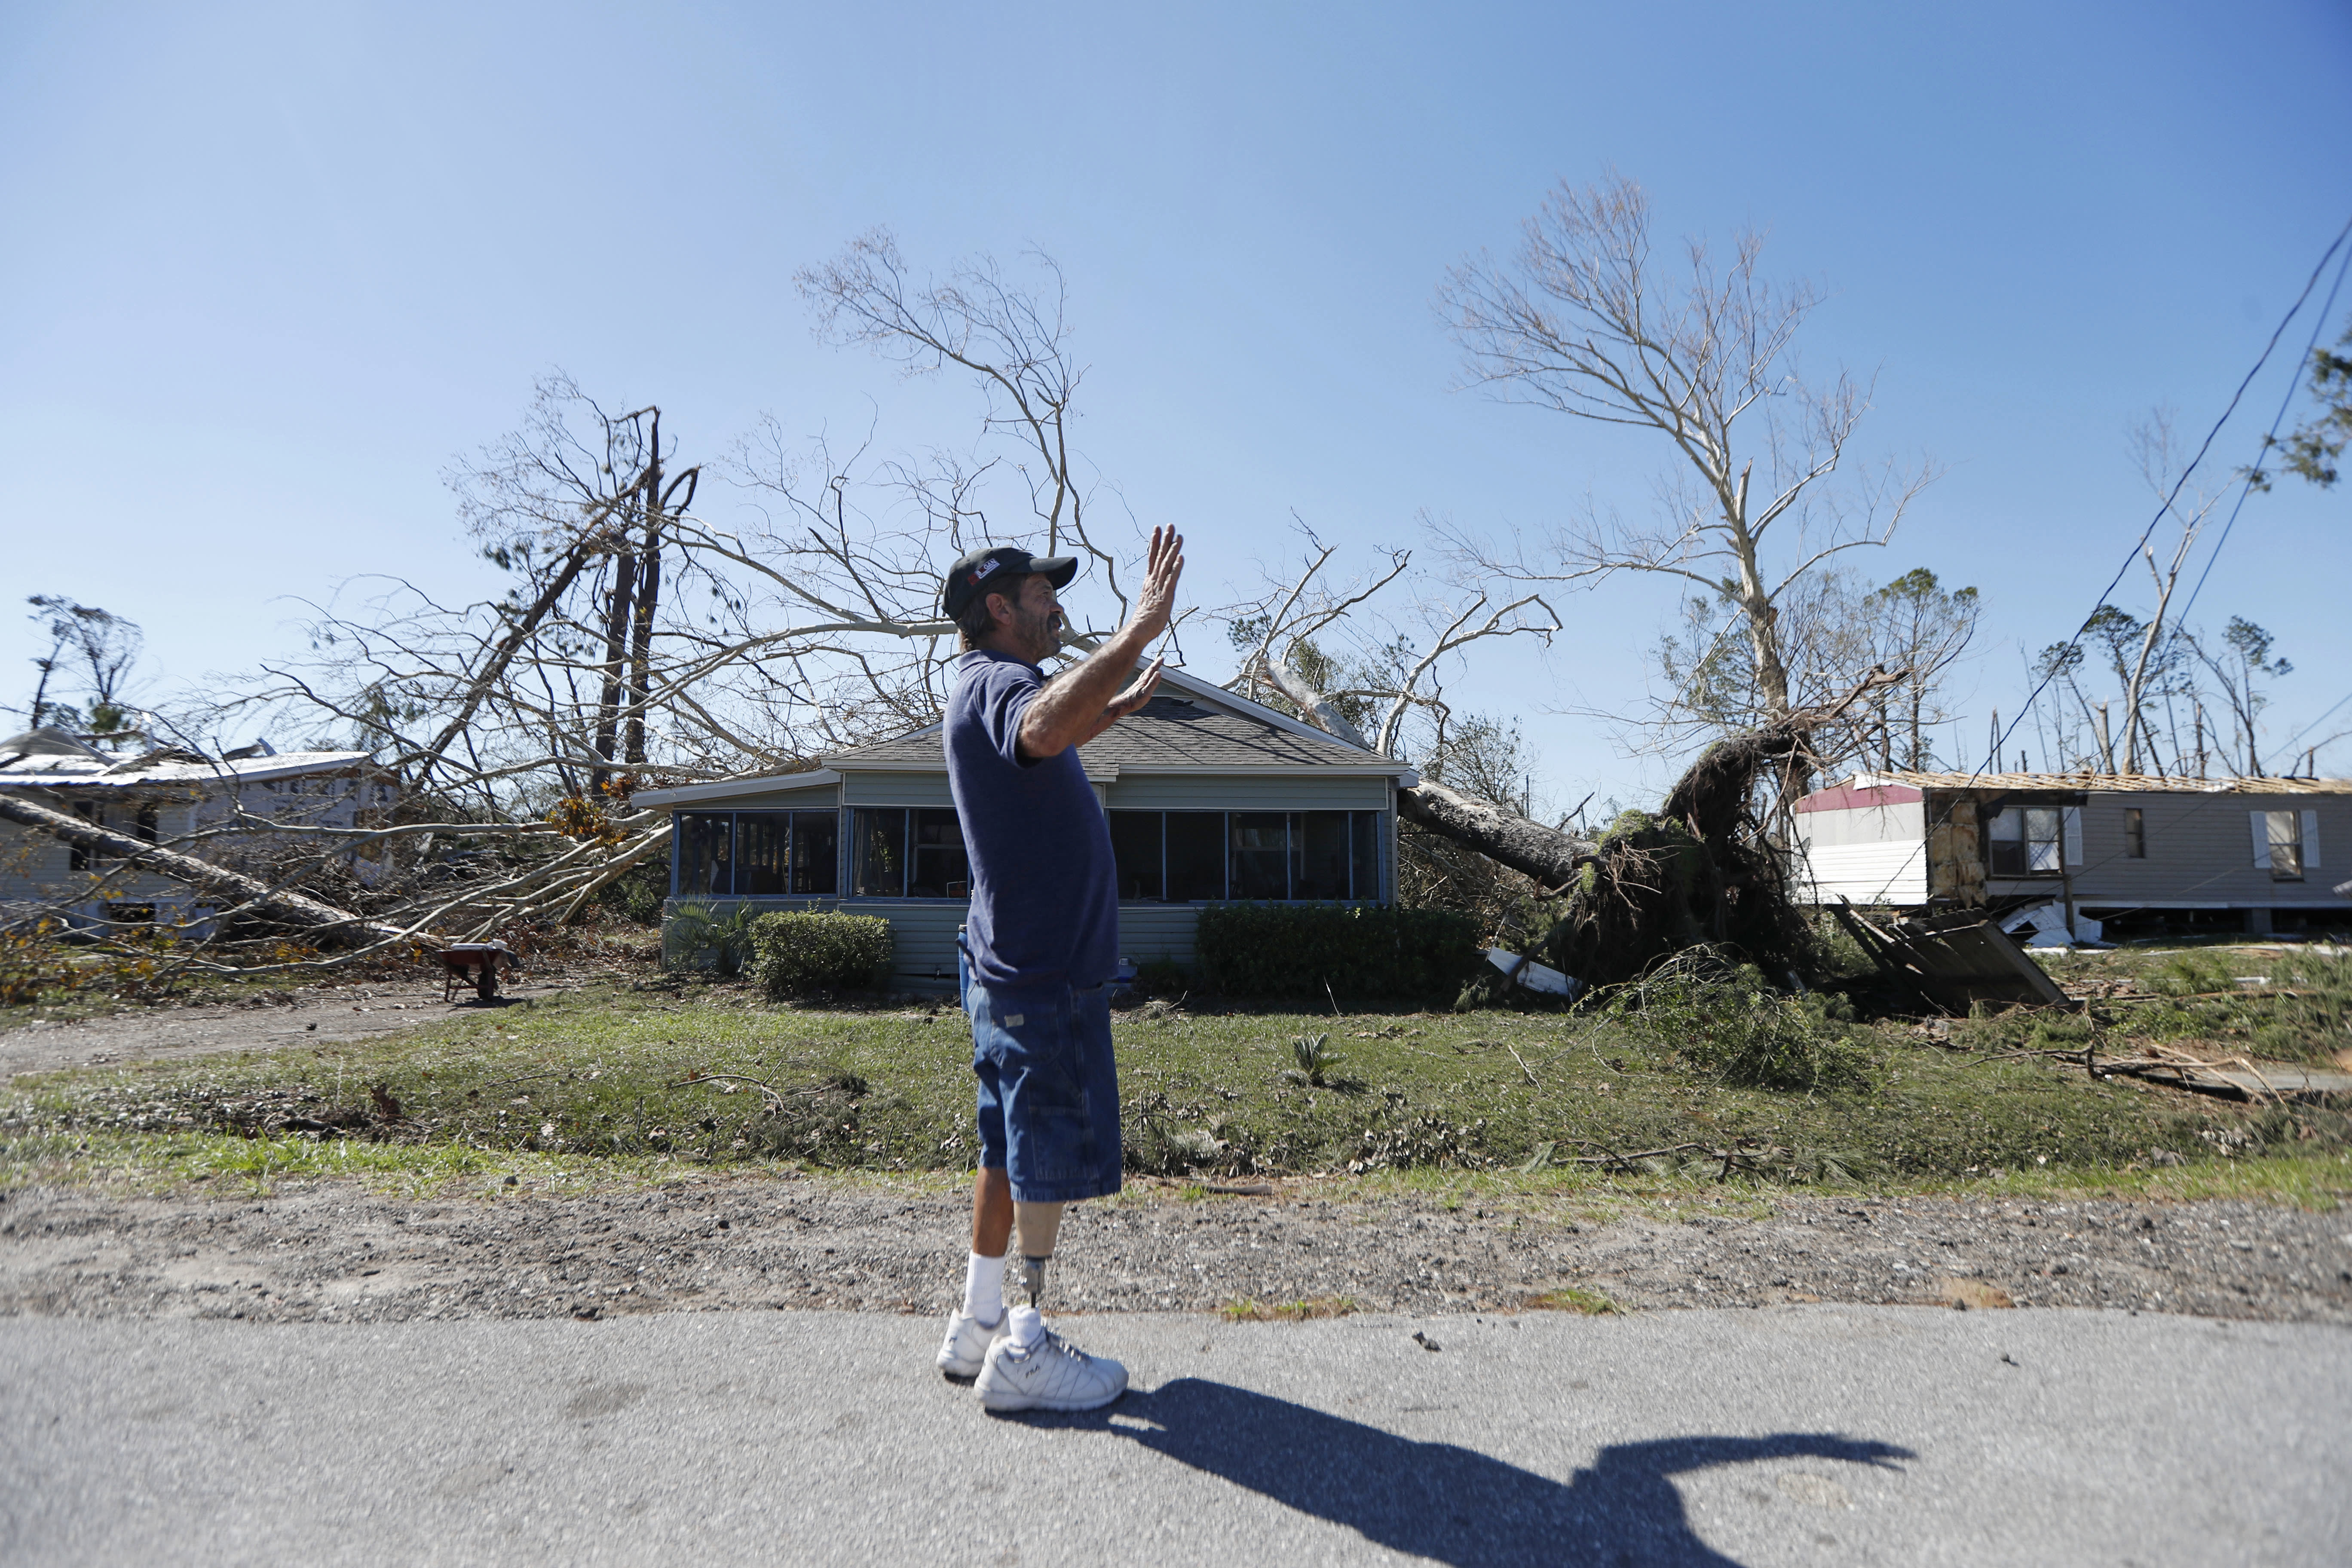 In this Oct. 13, 2018 photo, Clinton Moseley who lives with his mother, stands in front of her home after a tree fell on the home during Hurricane Michael, in Panama City, Fla. The house has been in his family for a century. Water gushed in, but he said they're staying. (AP Photo/Gerald Herbert)